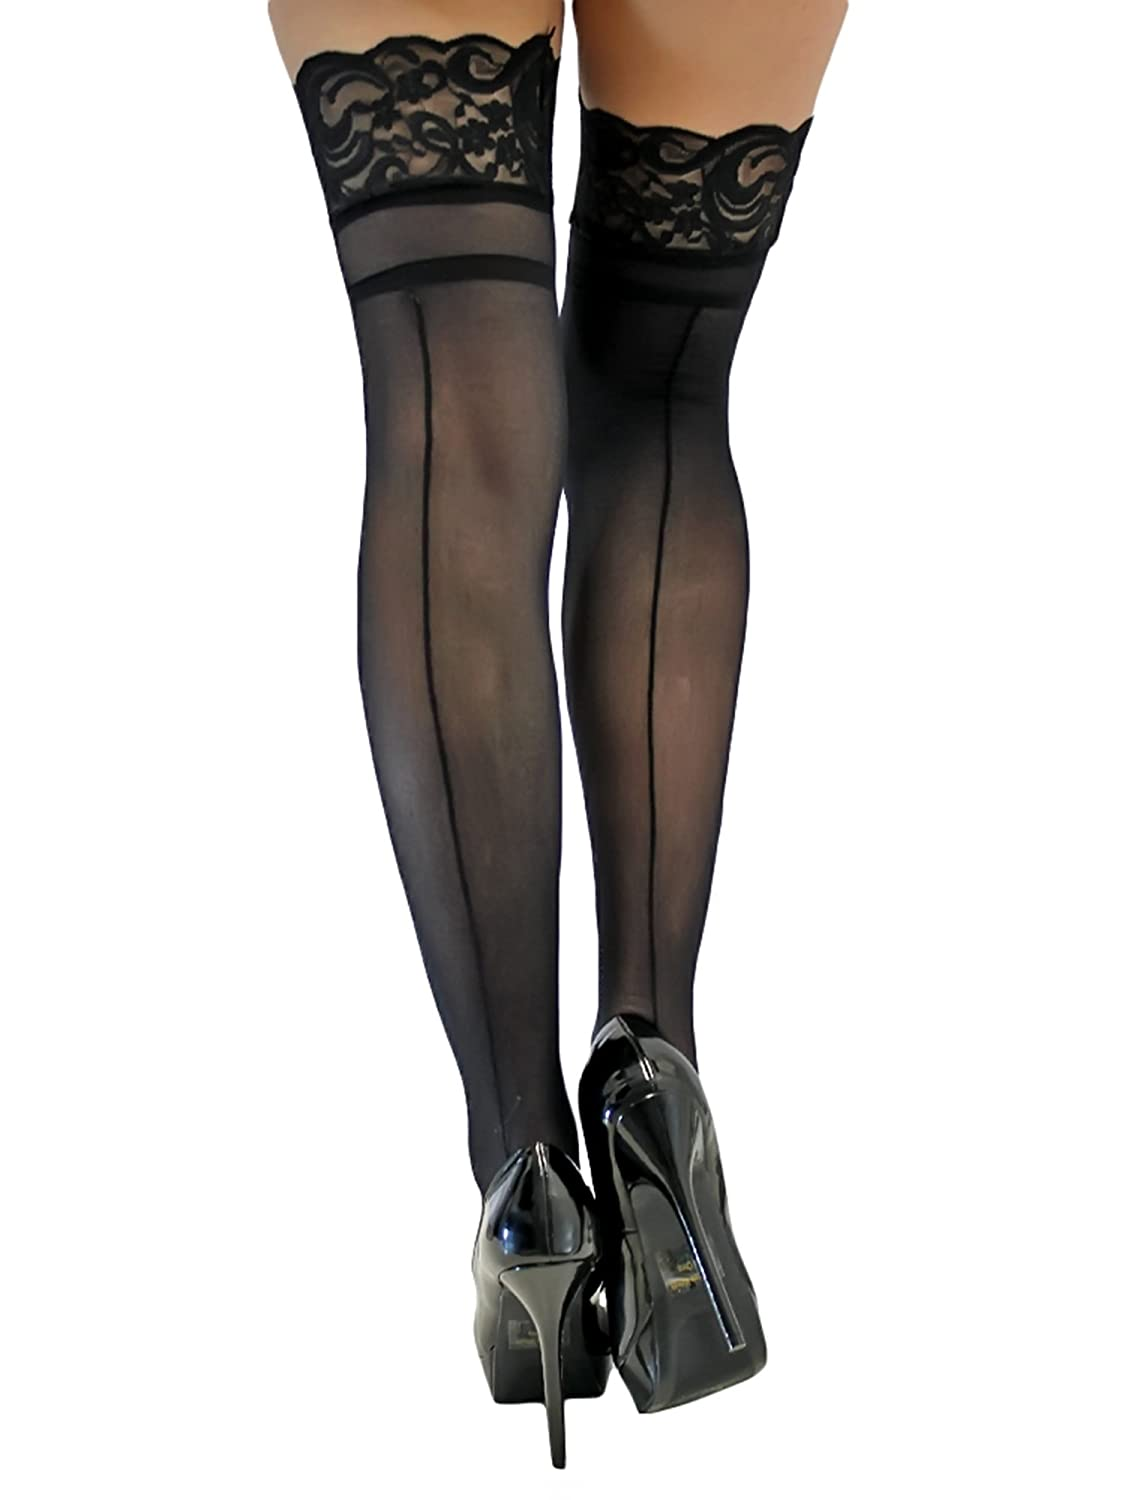 9867a4a8003b0 Black Back Seam Thigh High Stockings With Cuban Heel at Amazon Women's  Clothing store: